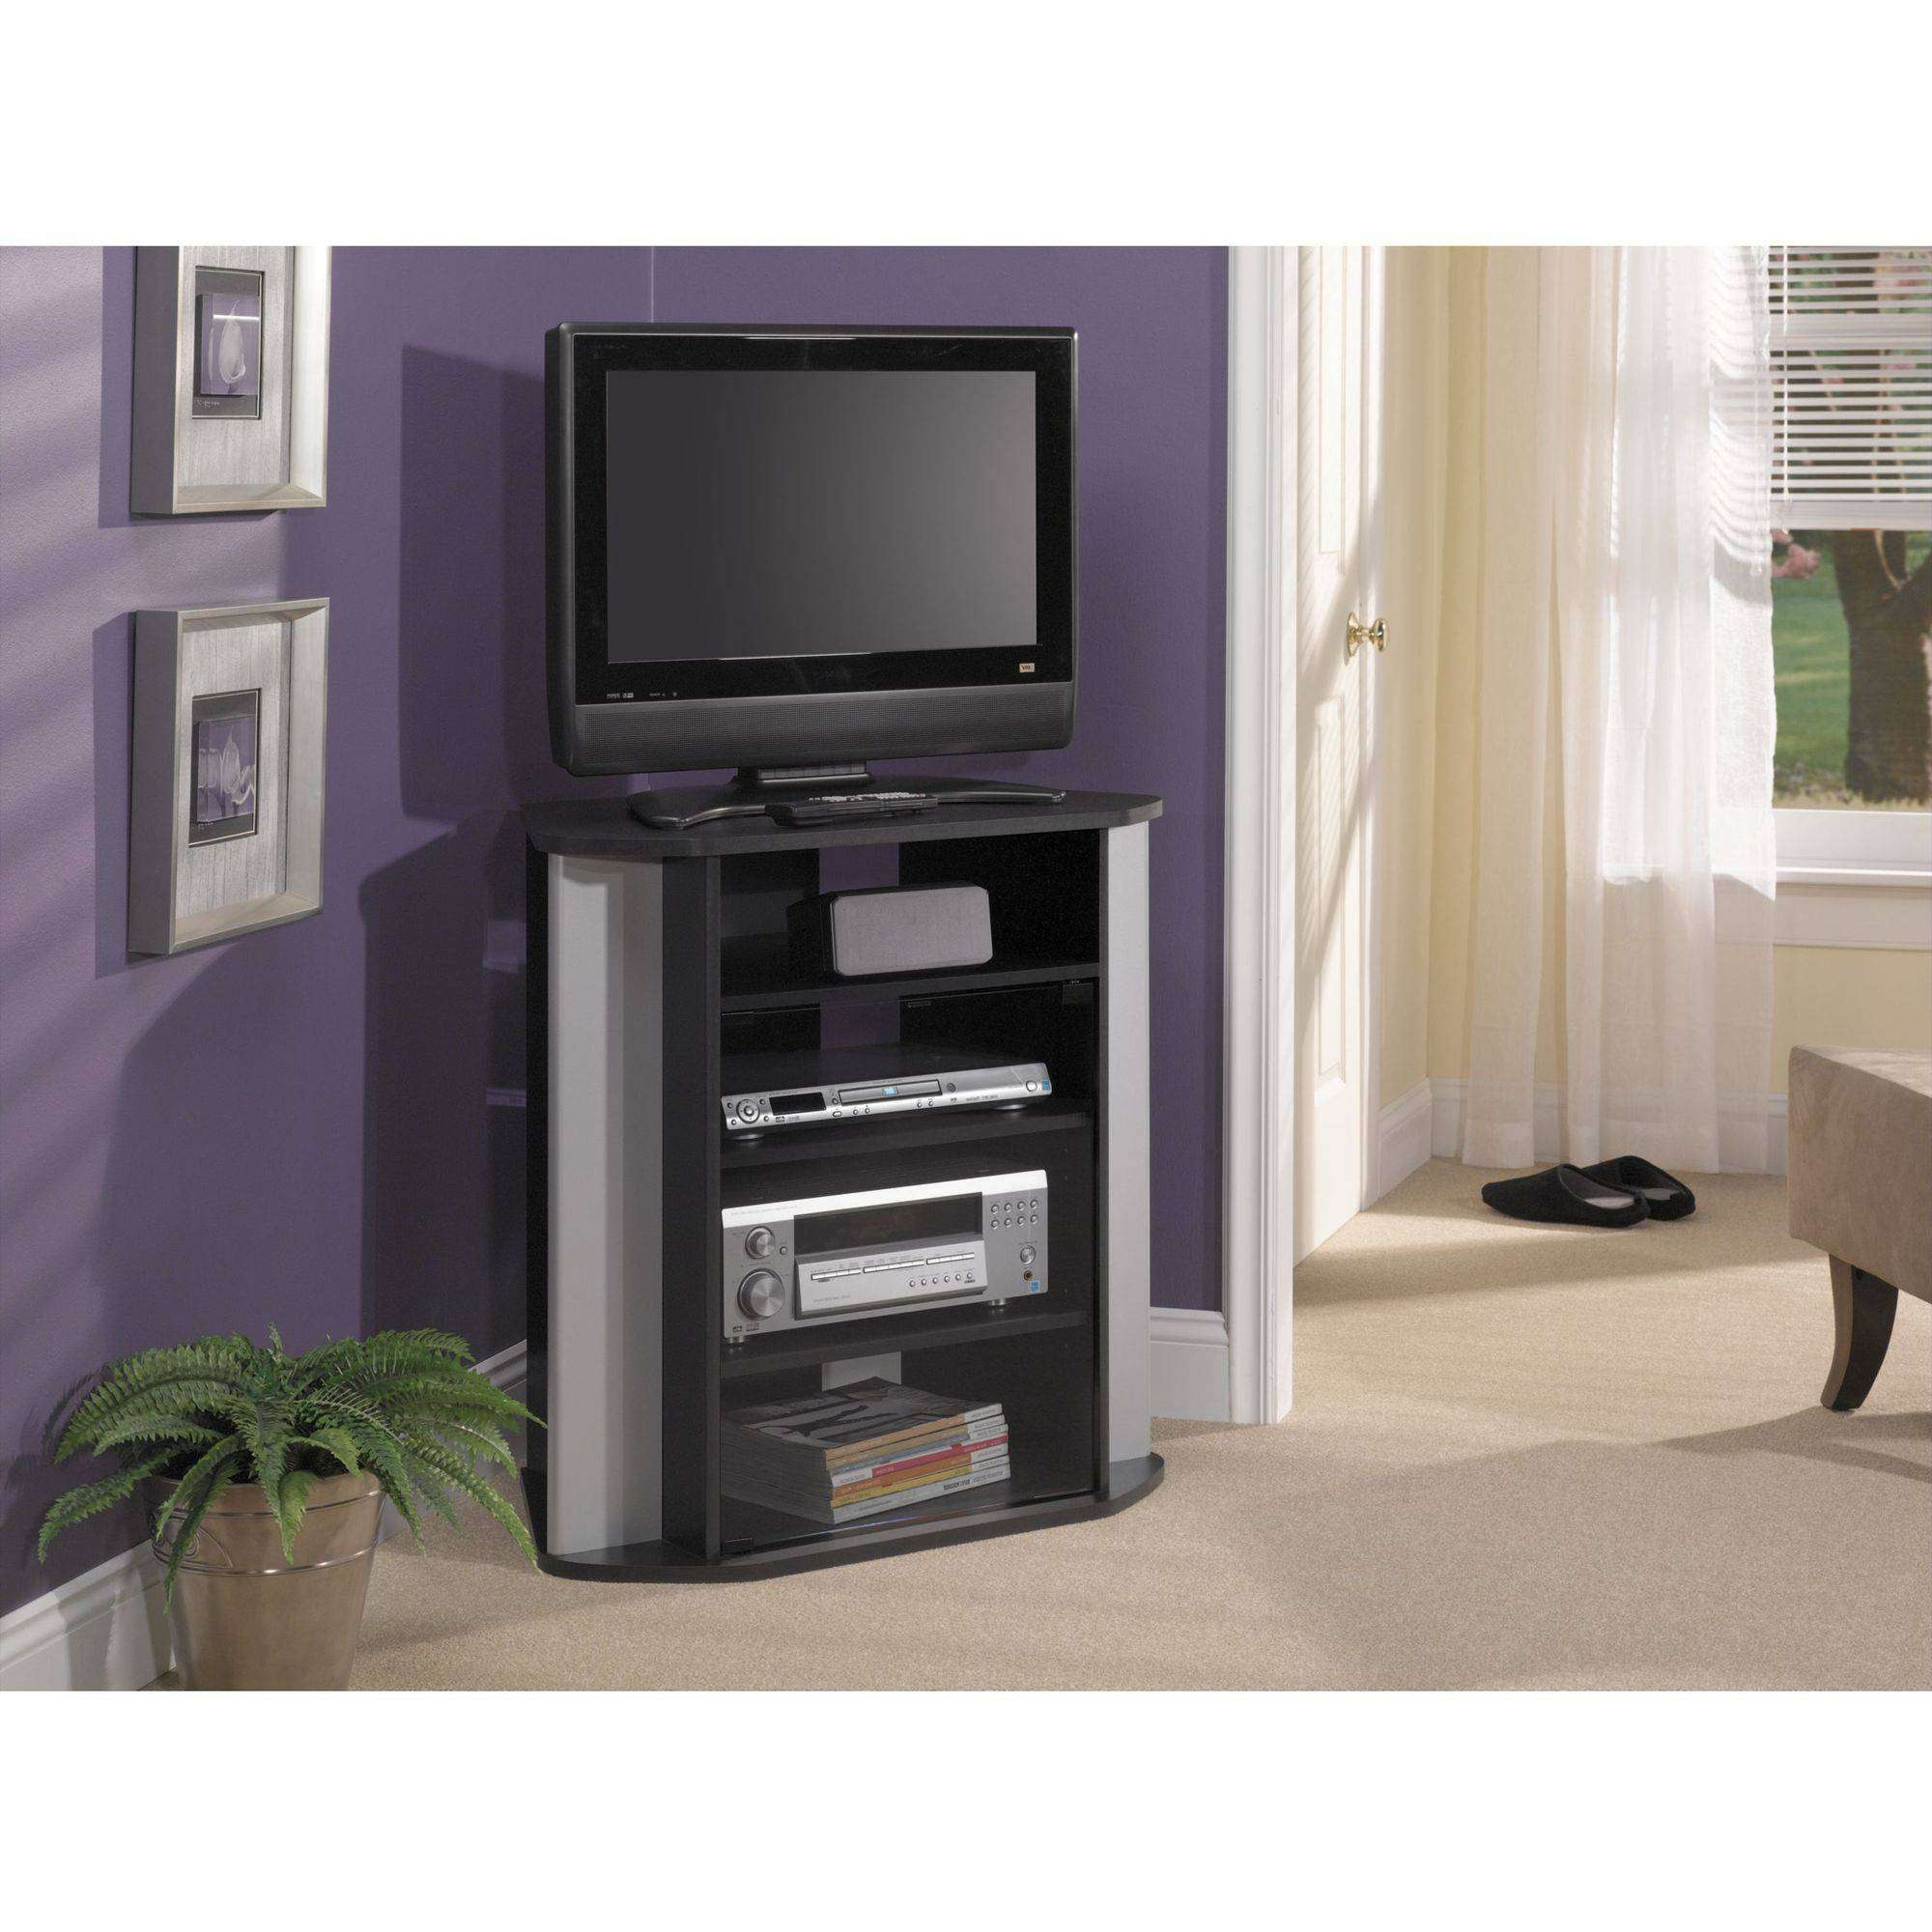 Bush Visions Black Tall Corner Tv Stand, For Tvs Up To 37 Inside Tall Black Tv Cabinets (View 3 of 20)